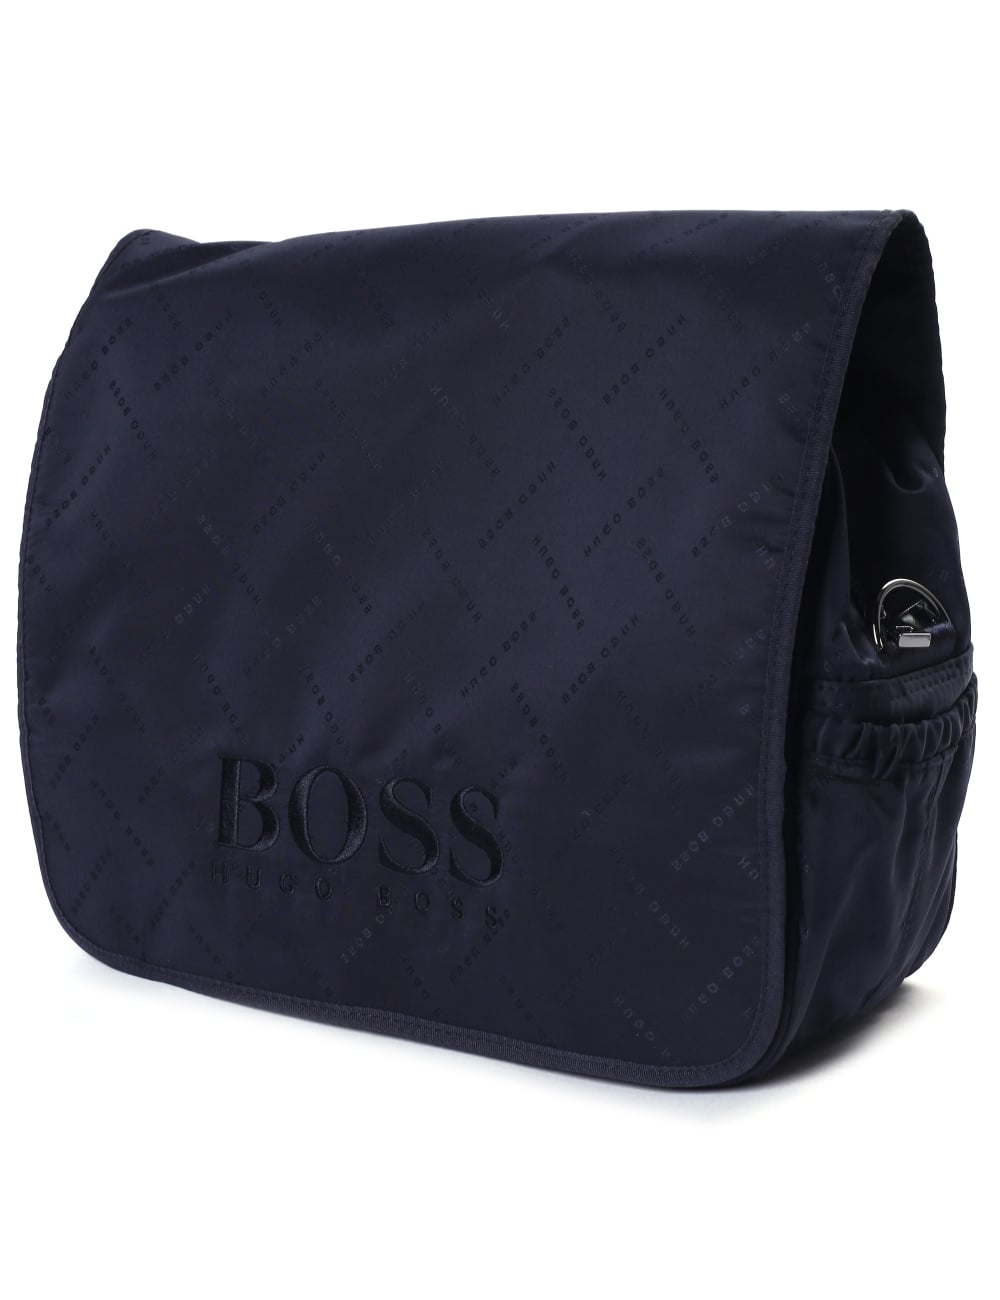 3d79119b6a8 Hugo Boss Baby Changing Bag